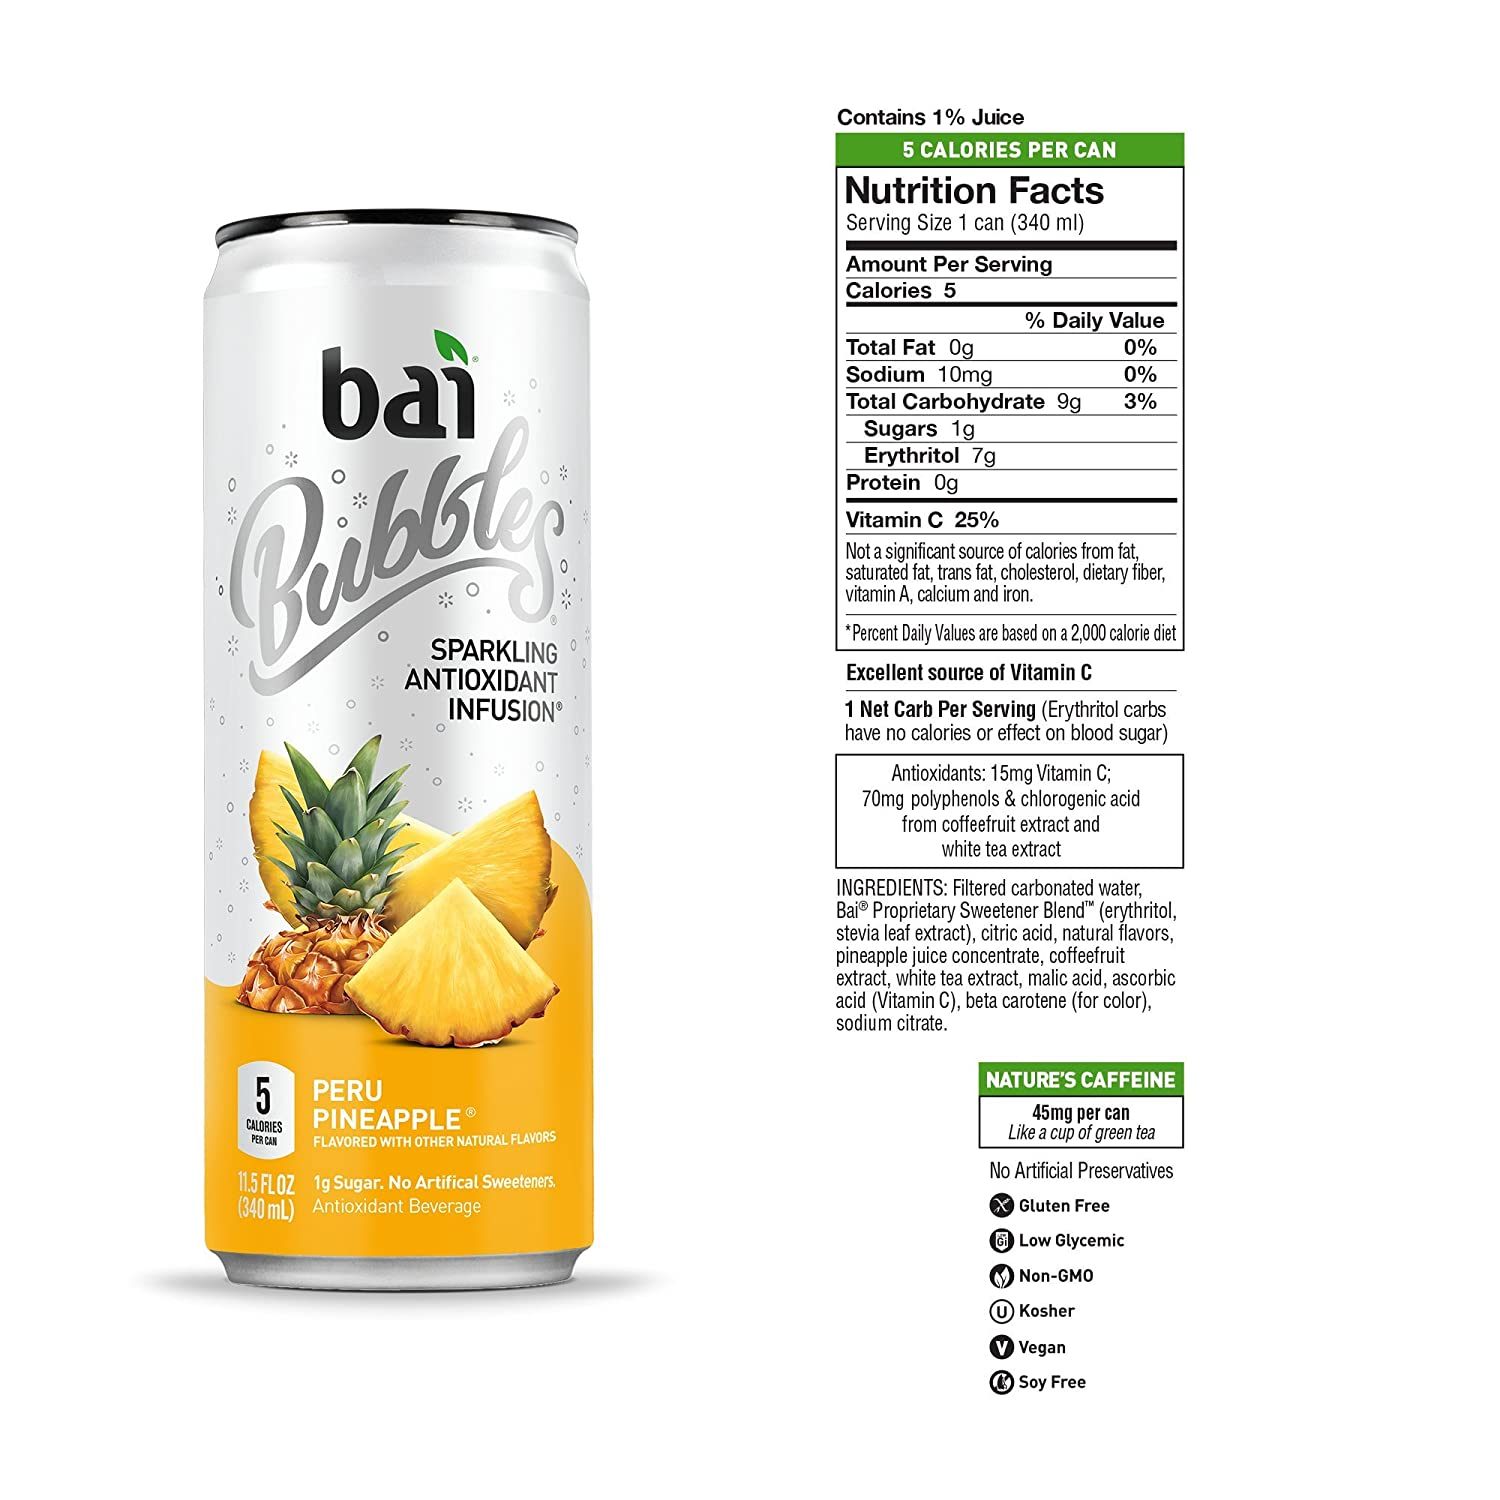 Bai Bubbles, Sparkling Water, Peru Pineapple, Antioxidant Infused Drinks,  11 5 Fl  Oz Cans, 12 count